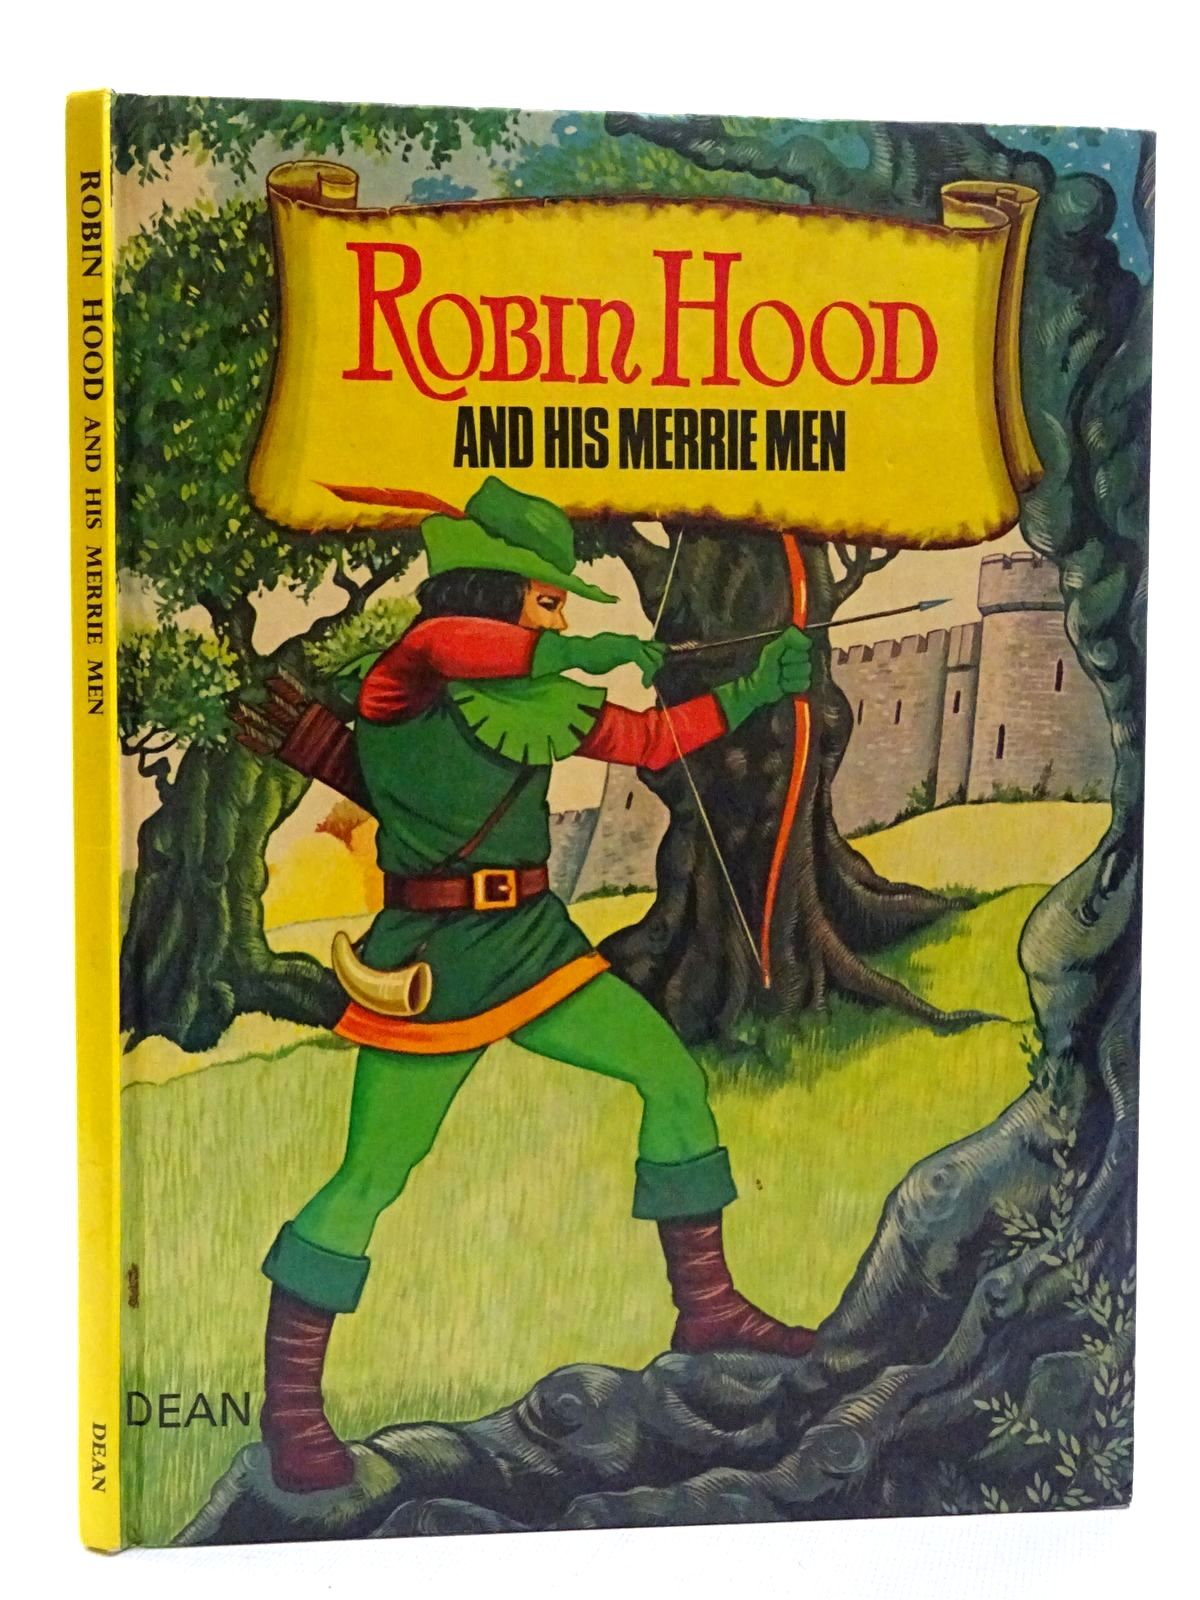 Photo of ROBIN HOOD AND HIS MERRIE MEN written by Dunlop, Roger illustrated by Leeder, John published by Dean & Son Ltd. (STOCK CODE: 2125276)  for sale by Stella & Rose's Books